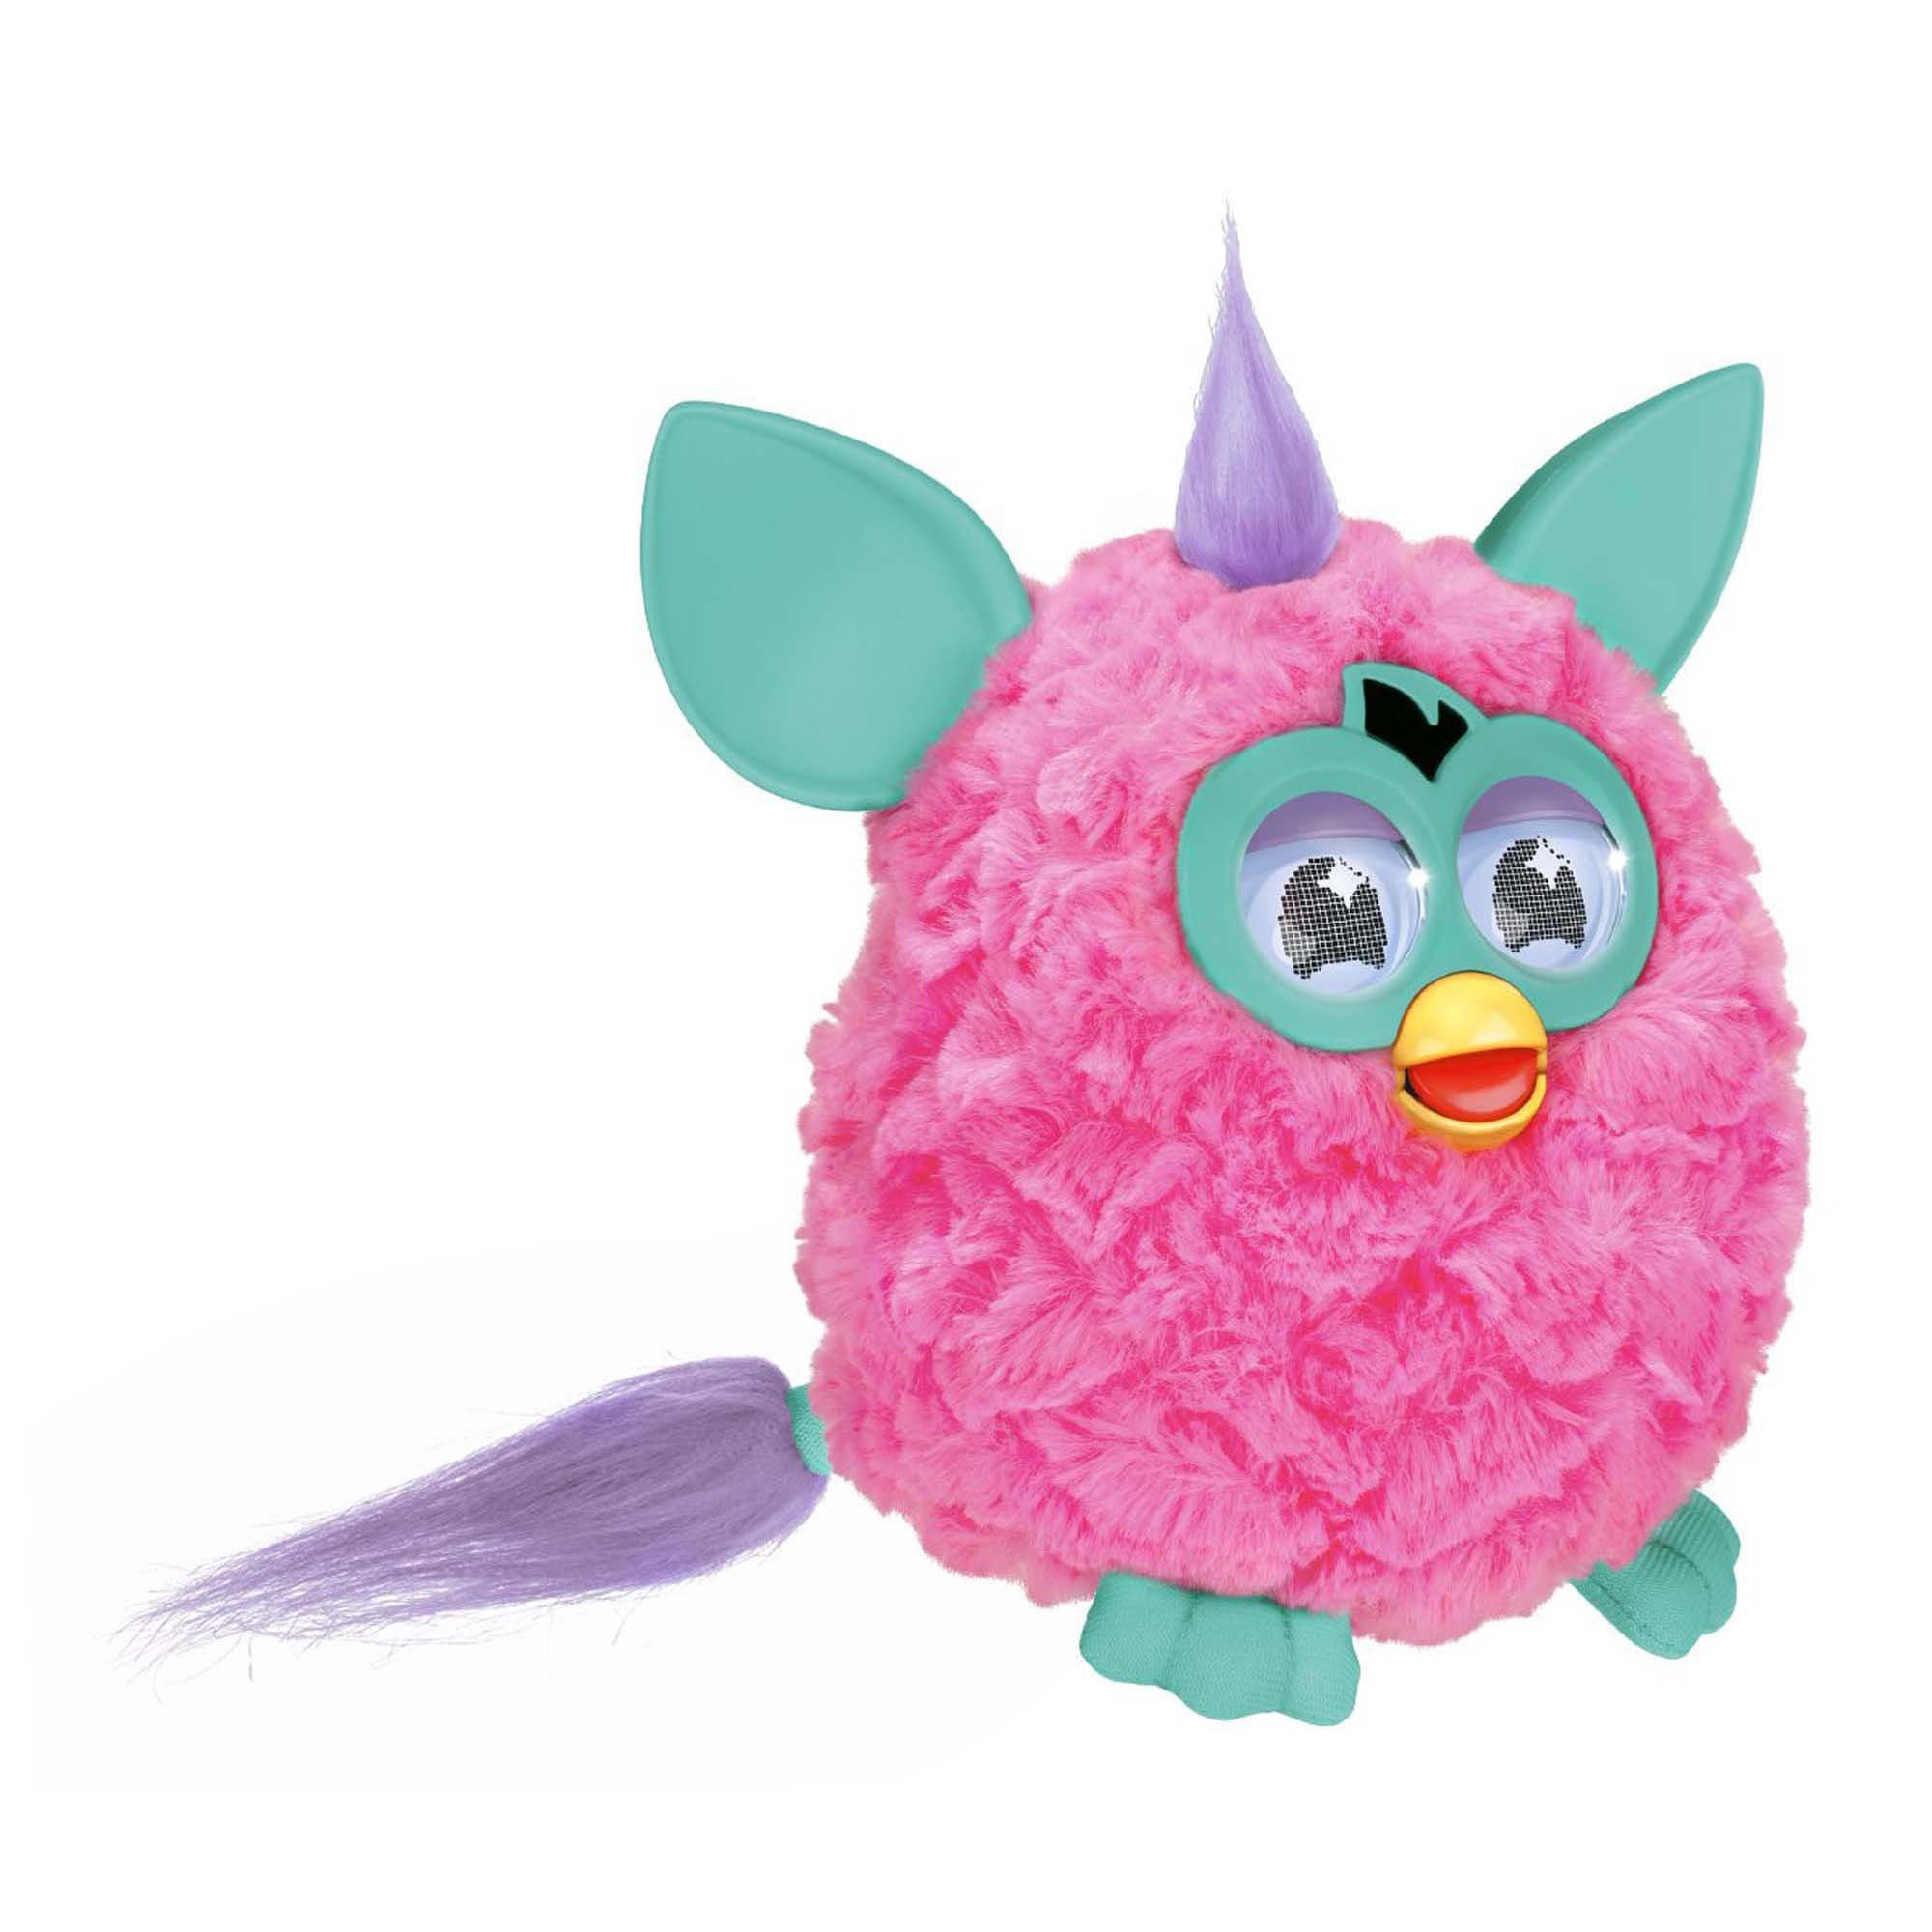 Furby (Pink/Teal) by Furby (Image #2)